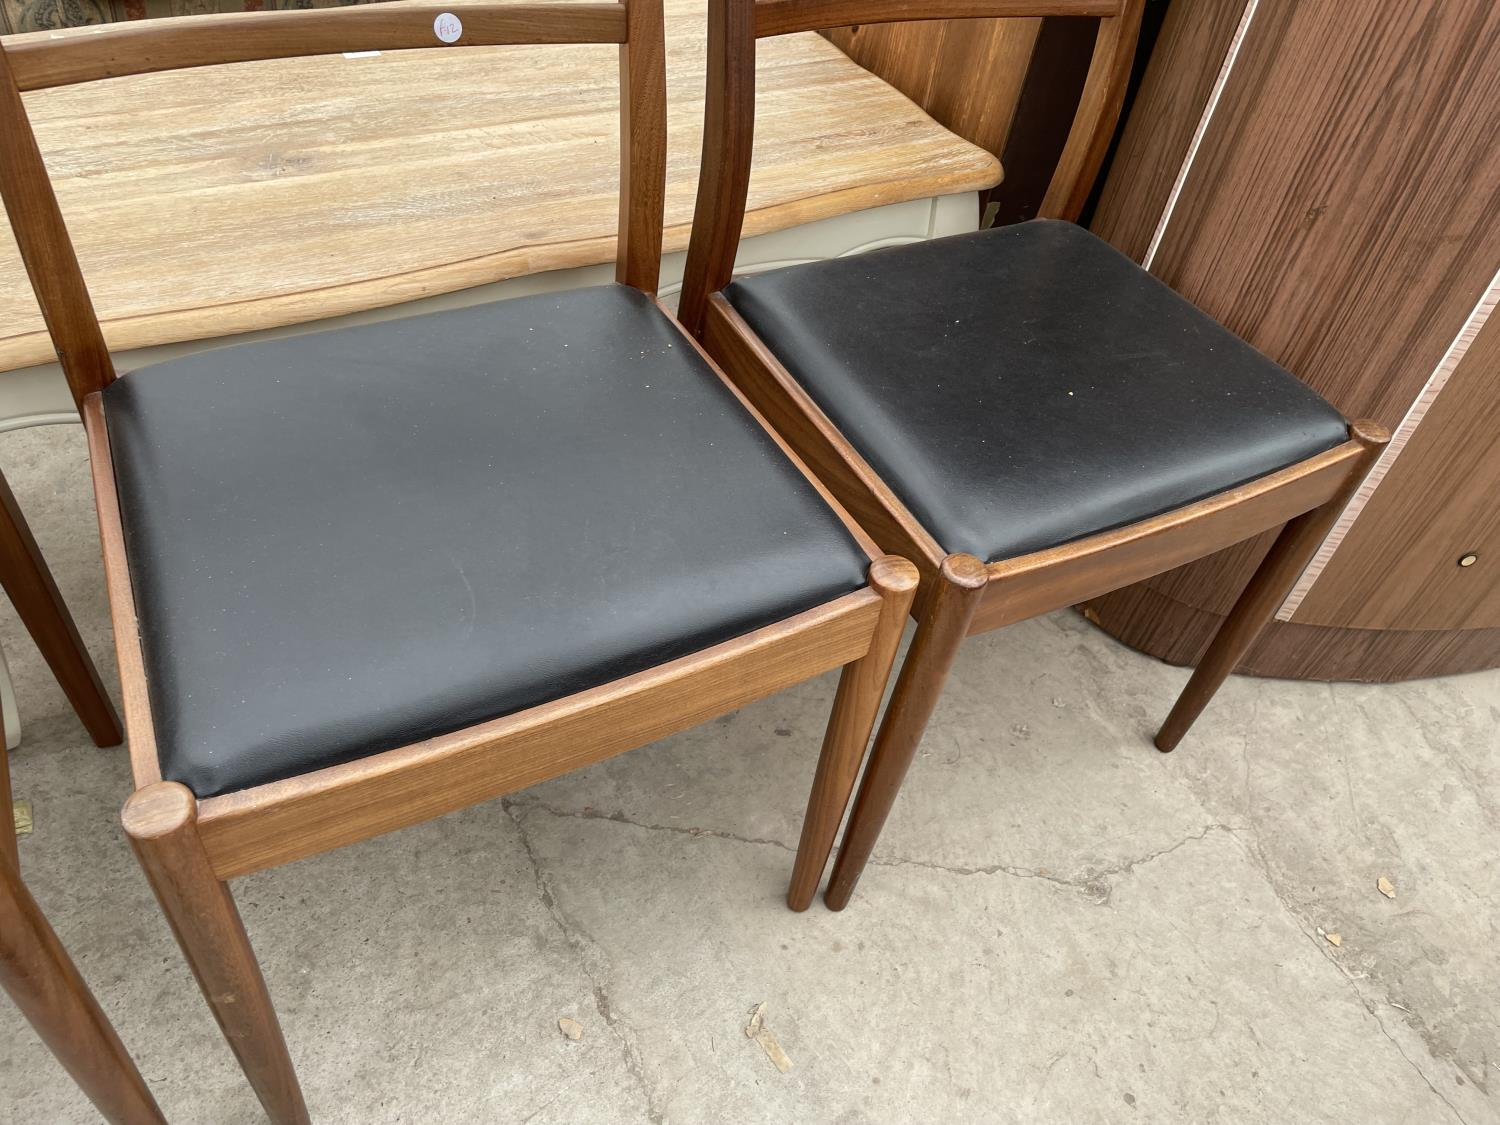 A SET OF FOUR RETRO TEAK G-PLAN DINING CHAIRS - Image 5 of 6